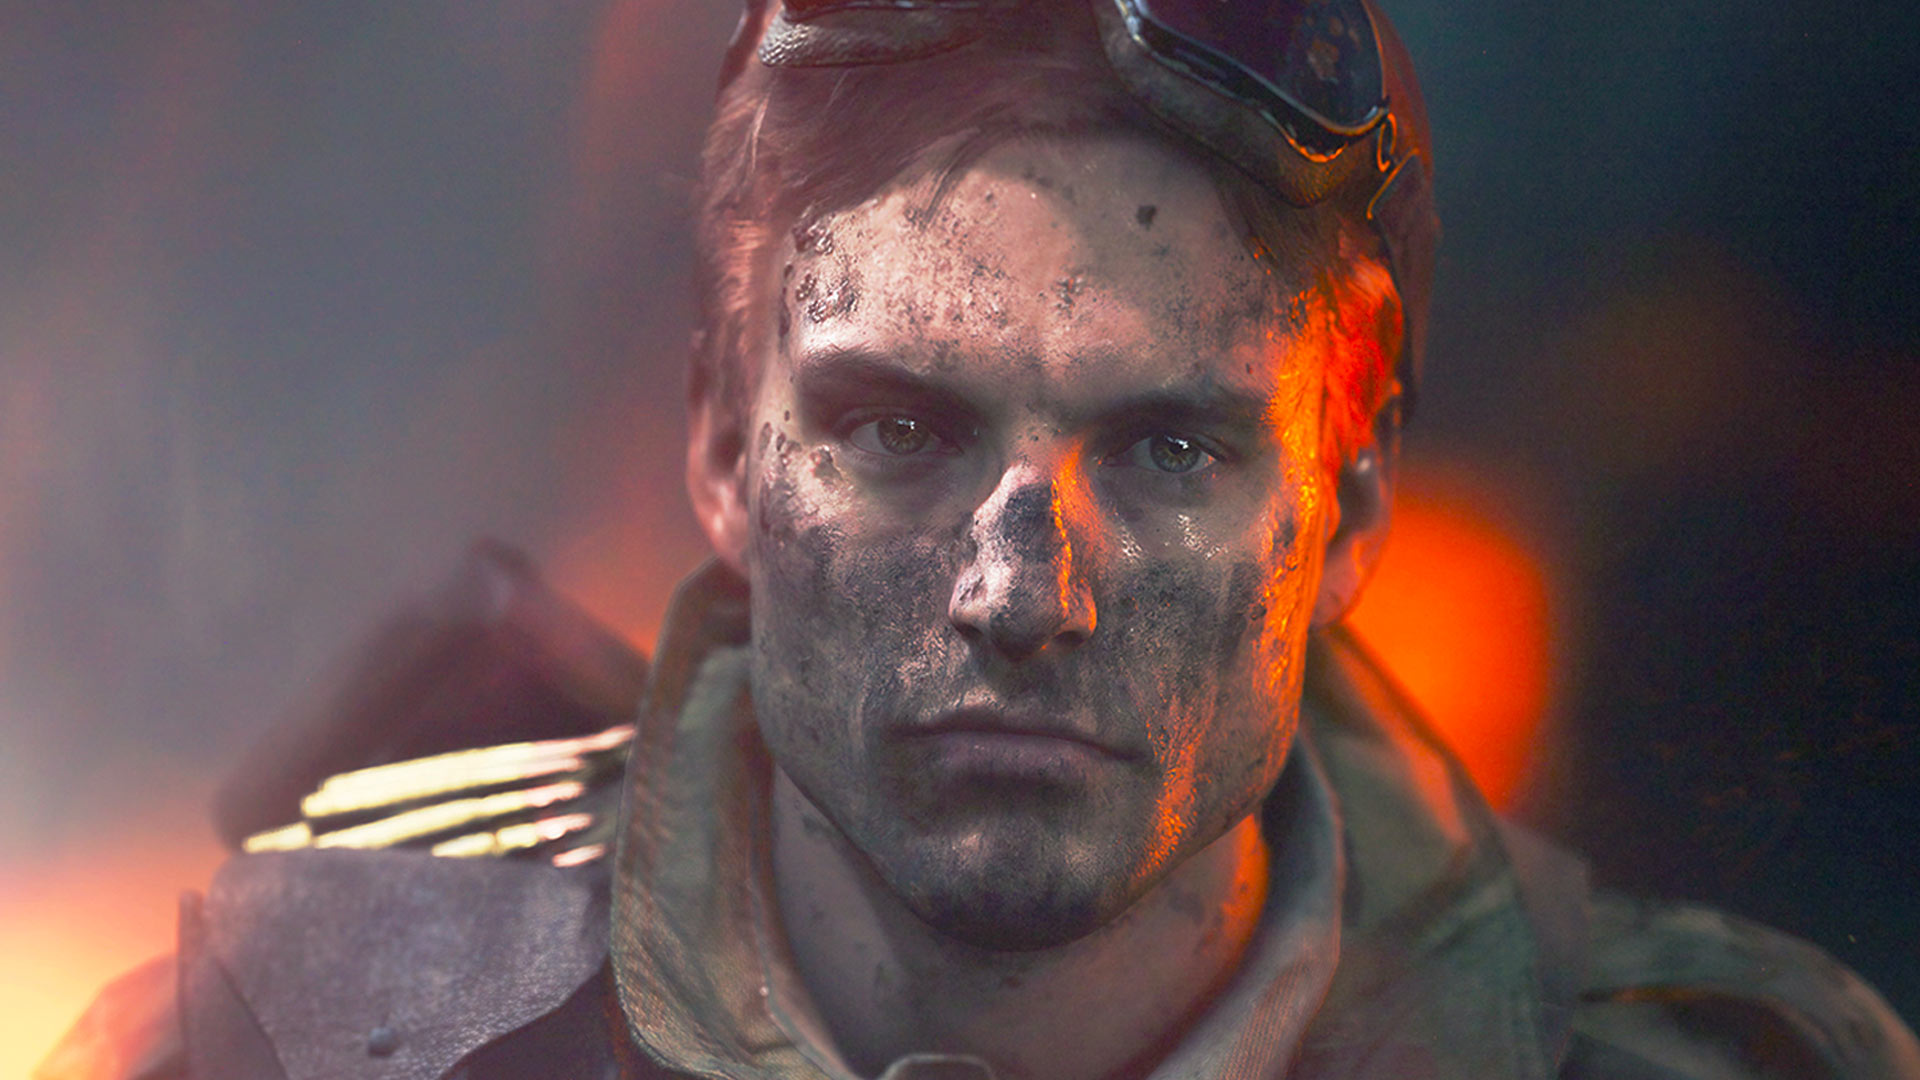 The next Battlefield game is coming this holiday season